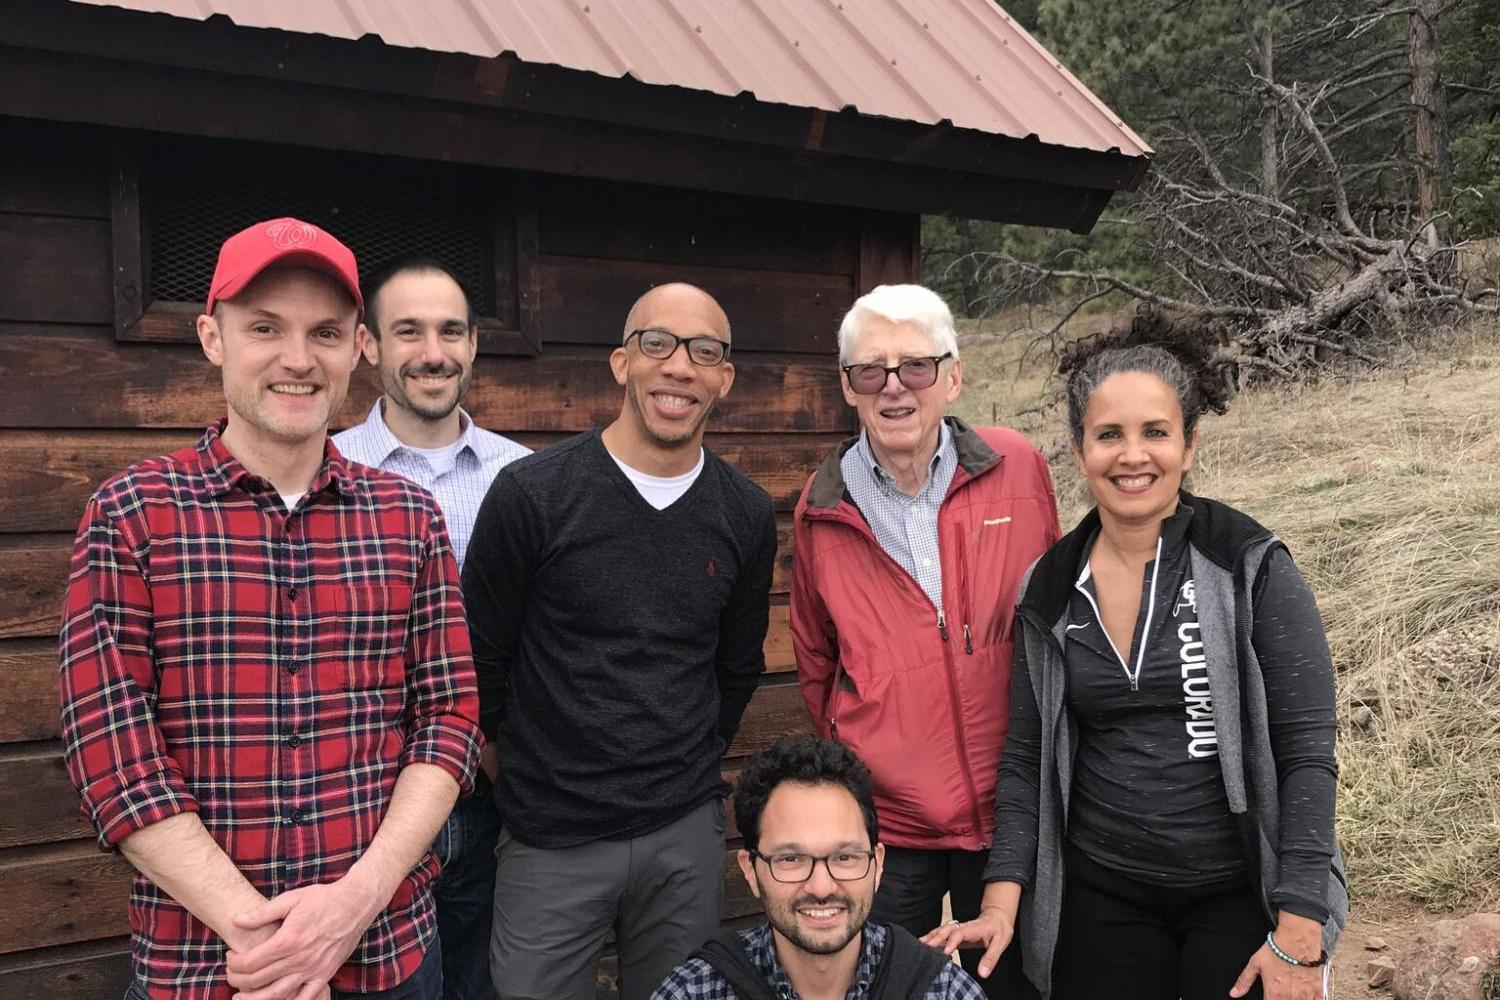 Rothberger scholars together for a hike in Boulder